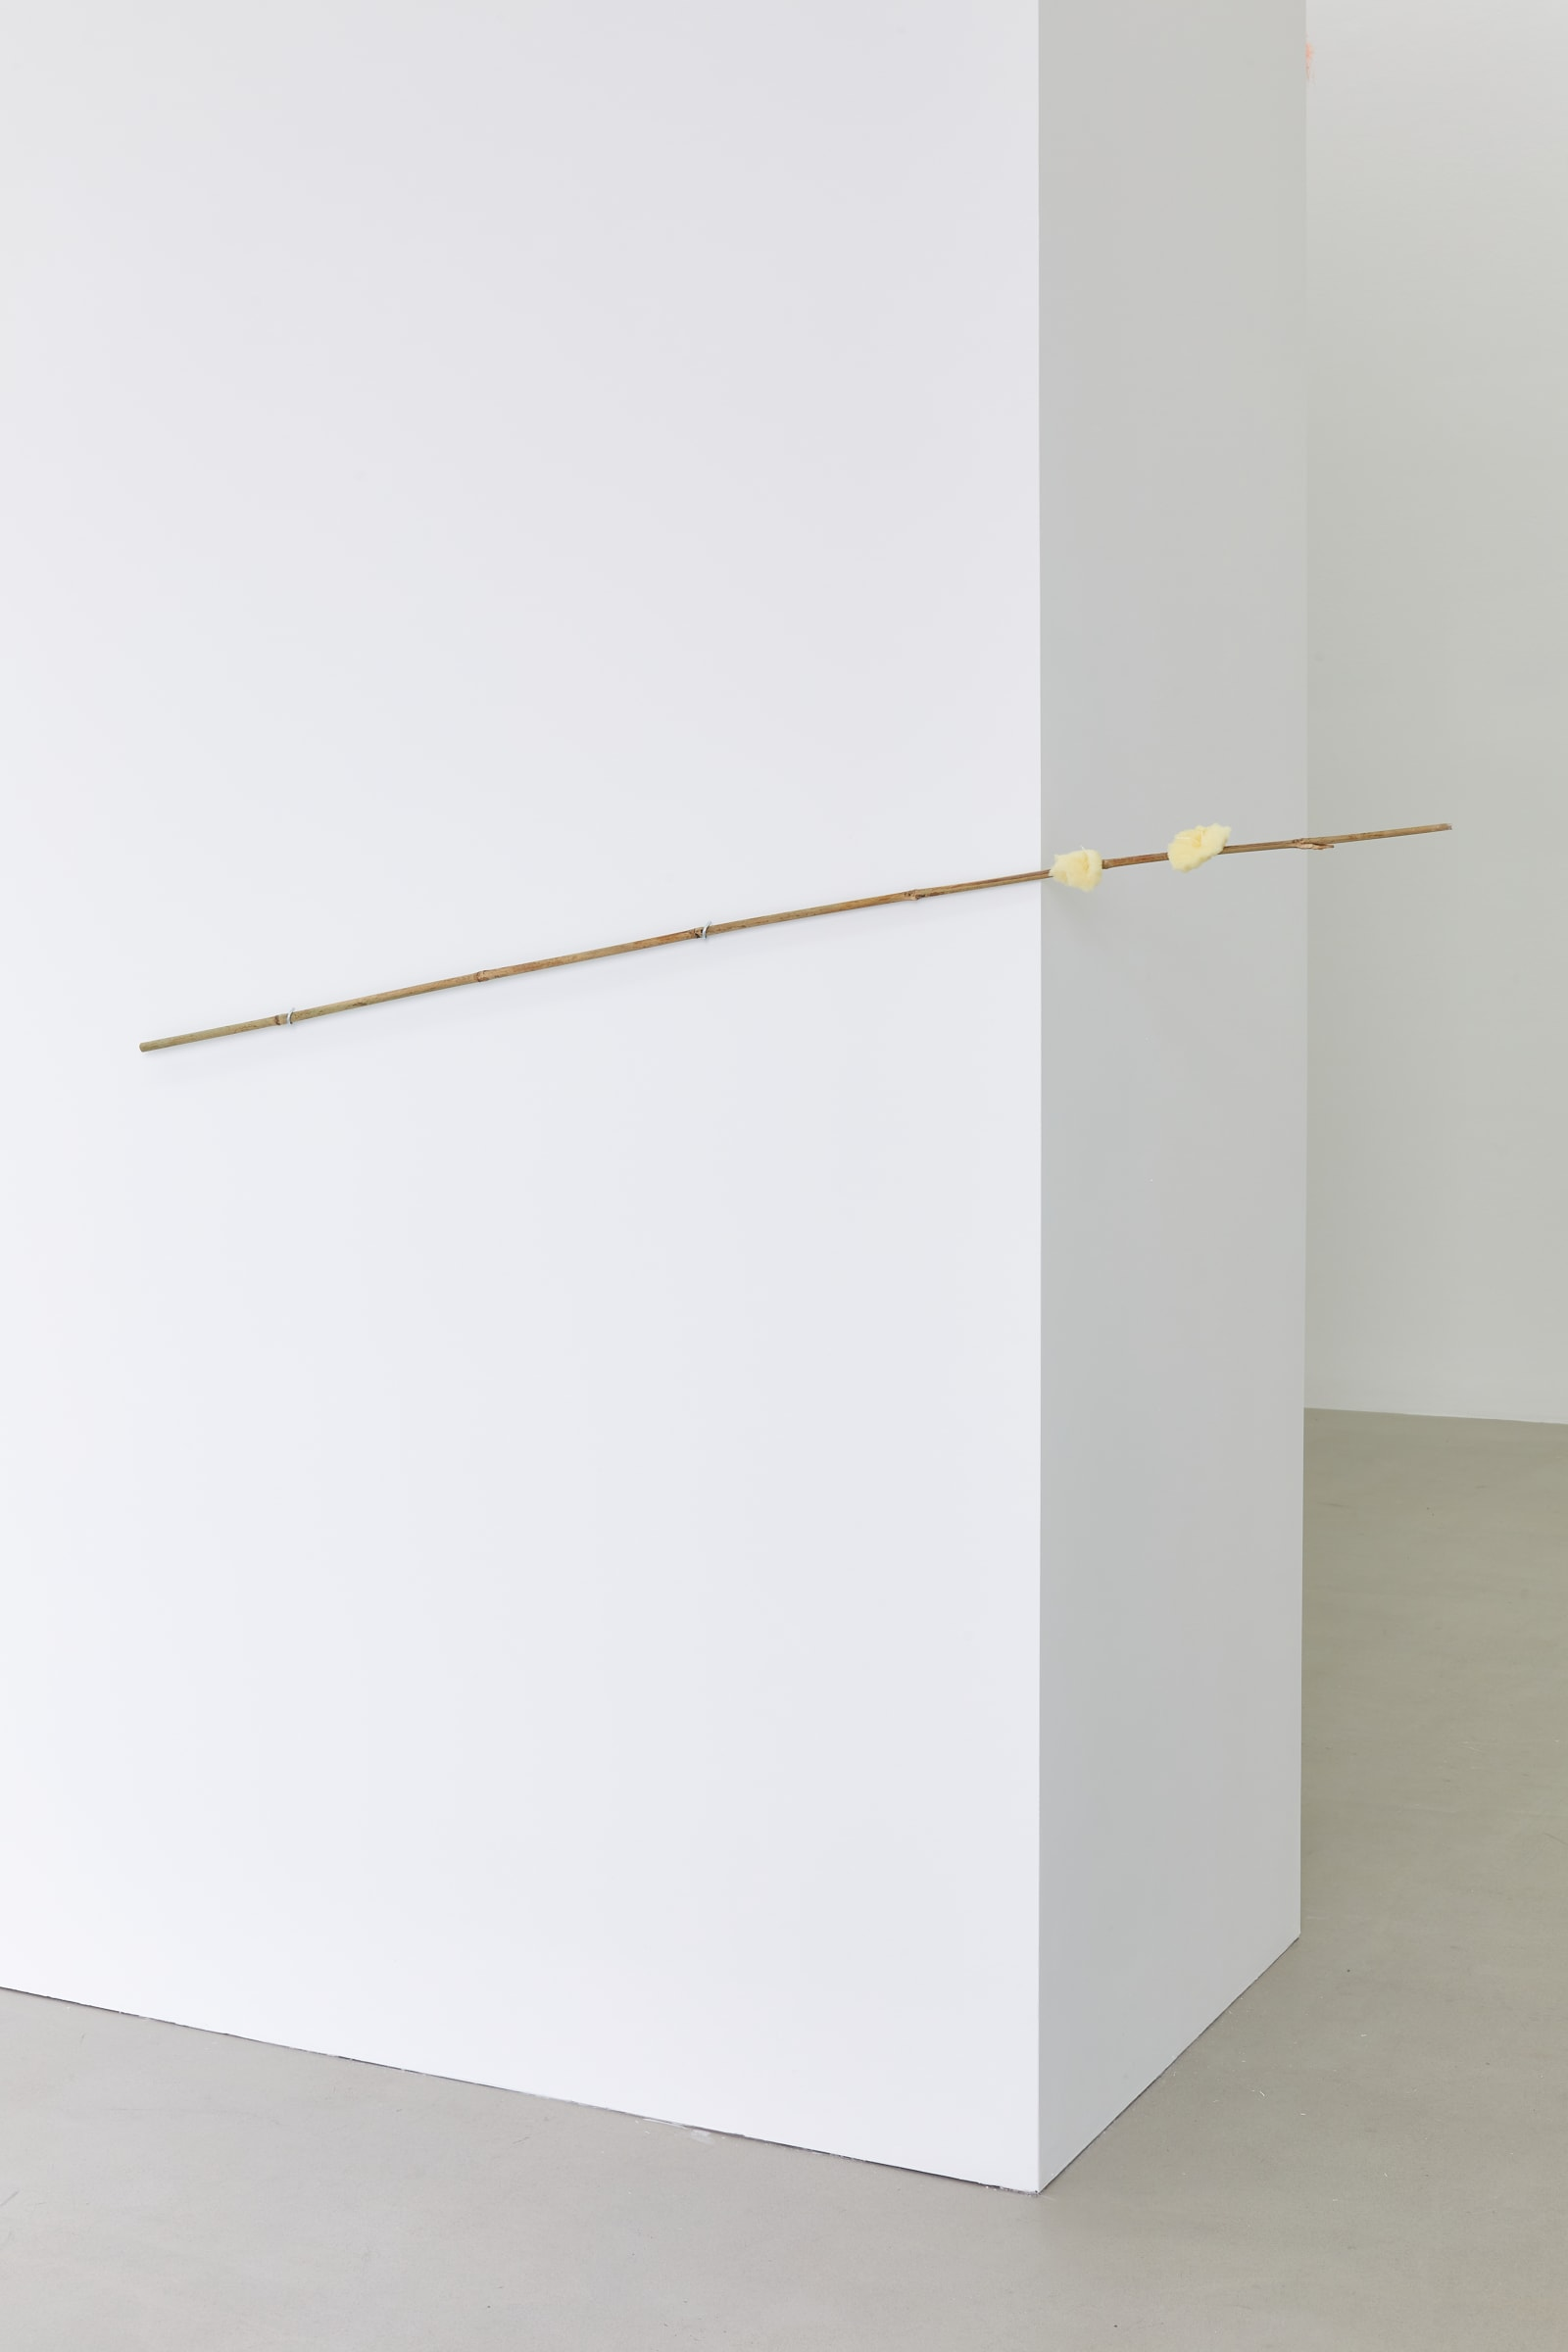 "<span class=""link fancybox-details-link""><a href=""/exhibitions/177/works/artworks16922/"">View Detail Page</a></span>MARGRÉT H. BLÖNDAL  Untitled, 2020  bamboo stick, sponge, hooks, cotton thread, plaster residue  20 x 157 x 8 cm 7 7/8 x 61 3/4 x 3 1/8 in"